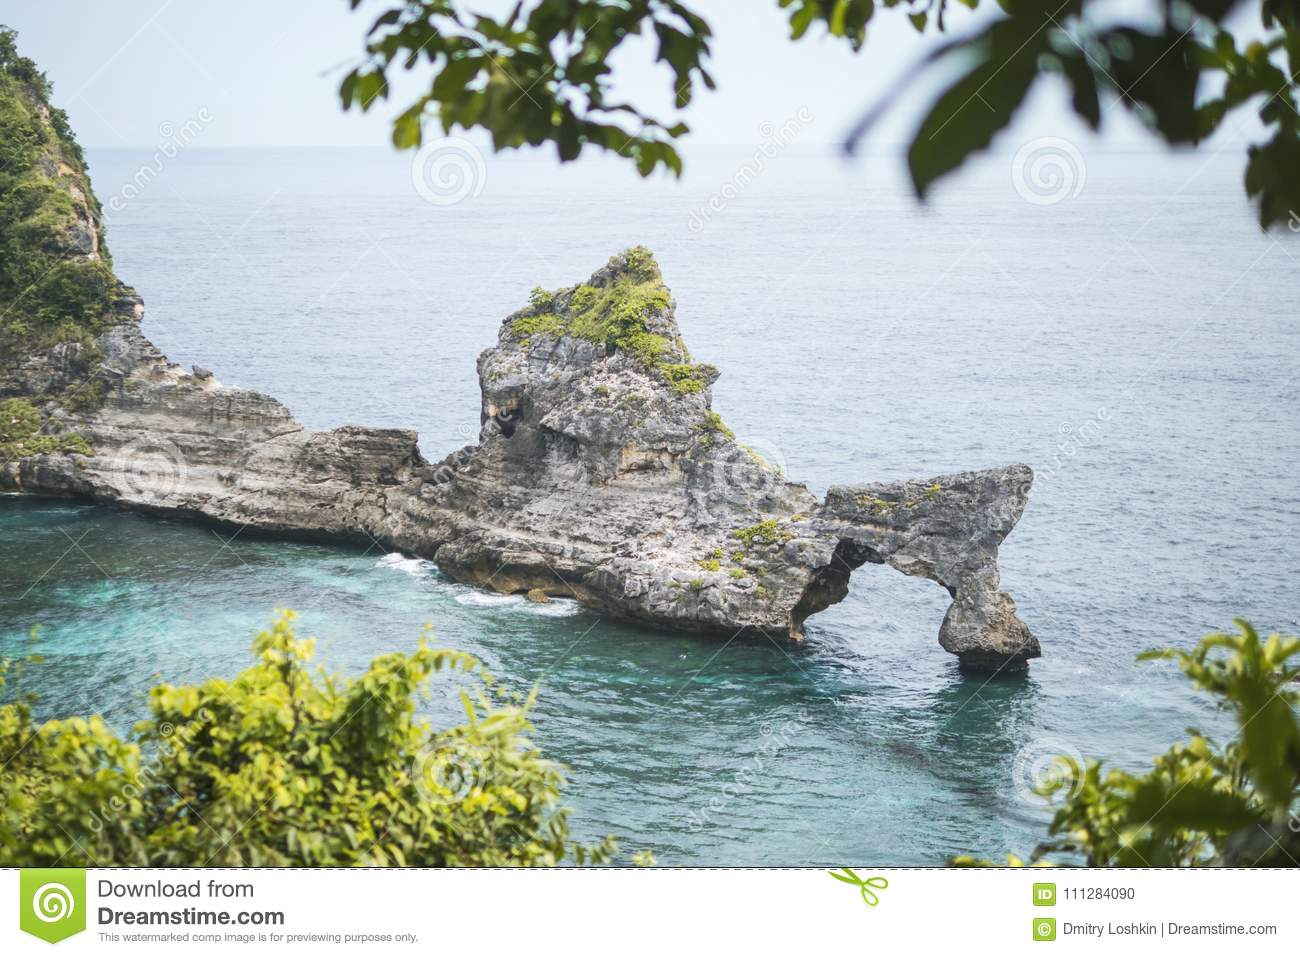 Beautiful Natural Rock Arch Island in the Sea at Atuh Beach in Nusa Penida, Bali, Indonesia. Aerial View.